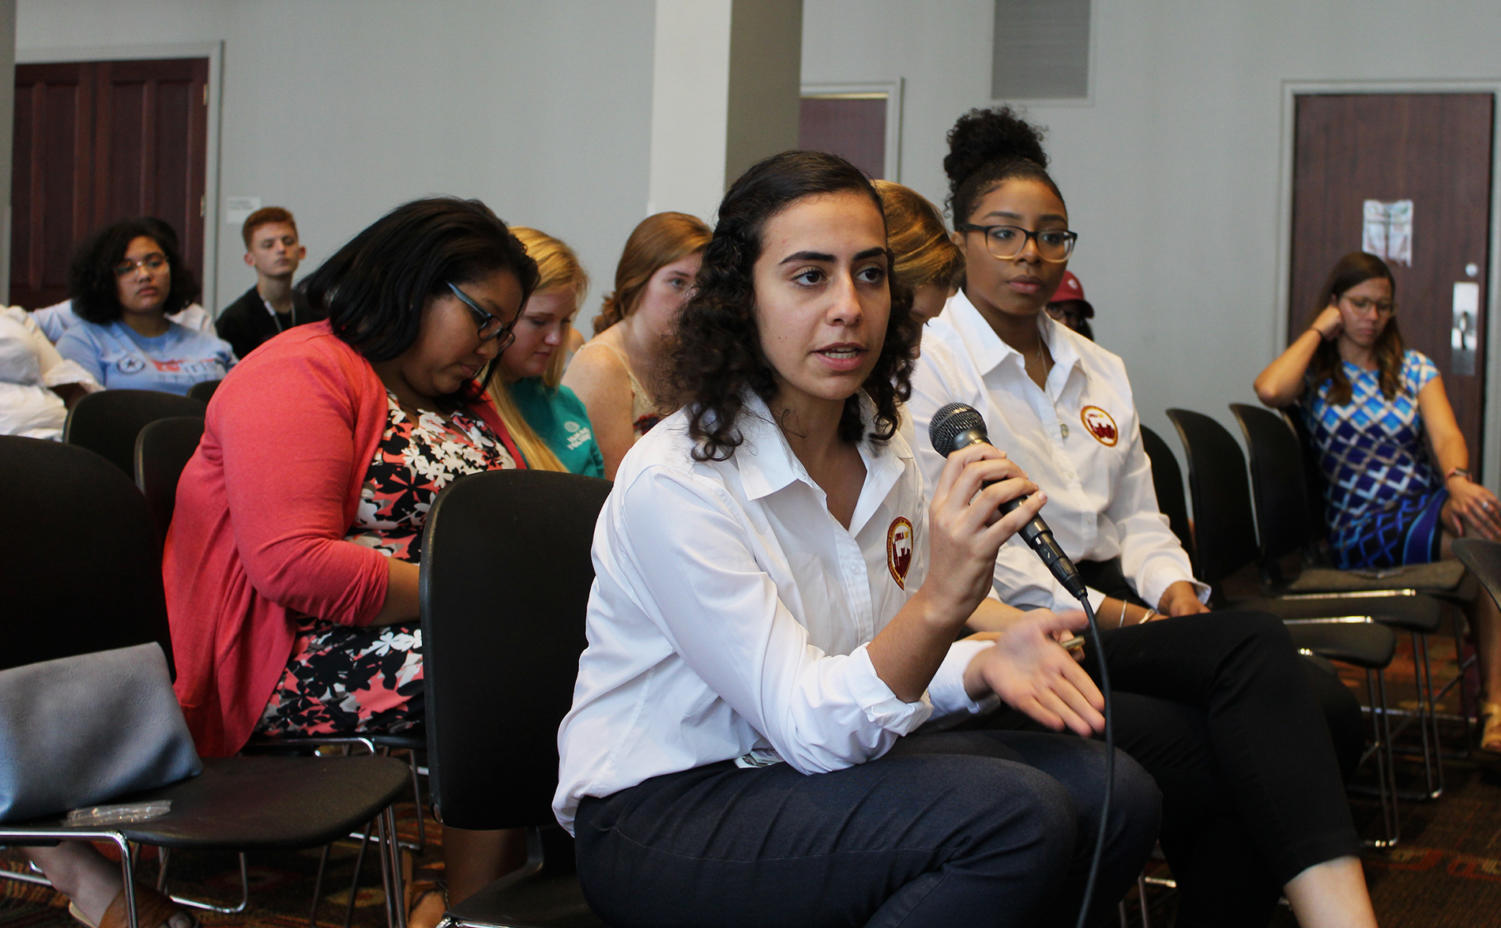 Rana Thabata, political science junior and SGA chief justice, asks the panel to clarify the student confusion about work study. Many students attended the town hall on Tuesday, Sept. 18, to voice their concerns about the student experience. Photo credit: Anderson Leal